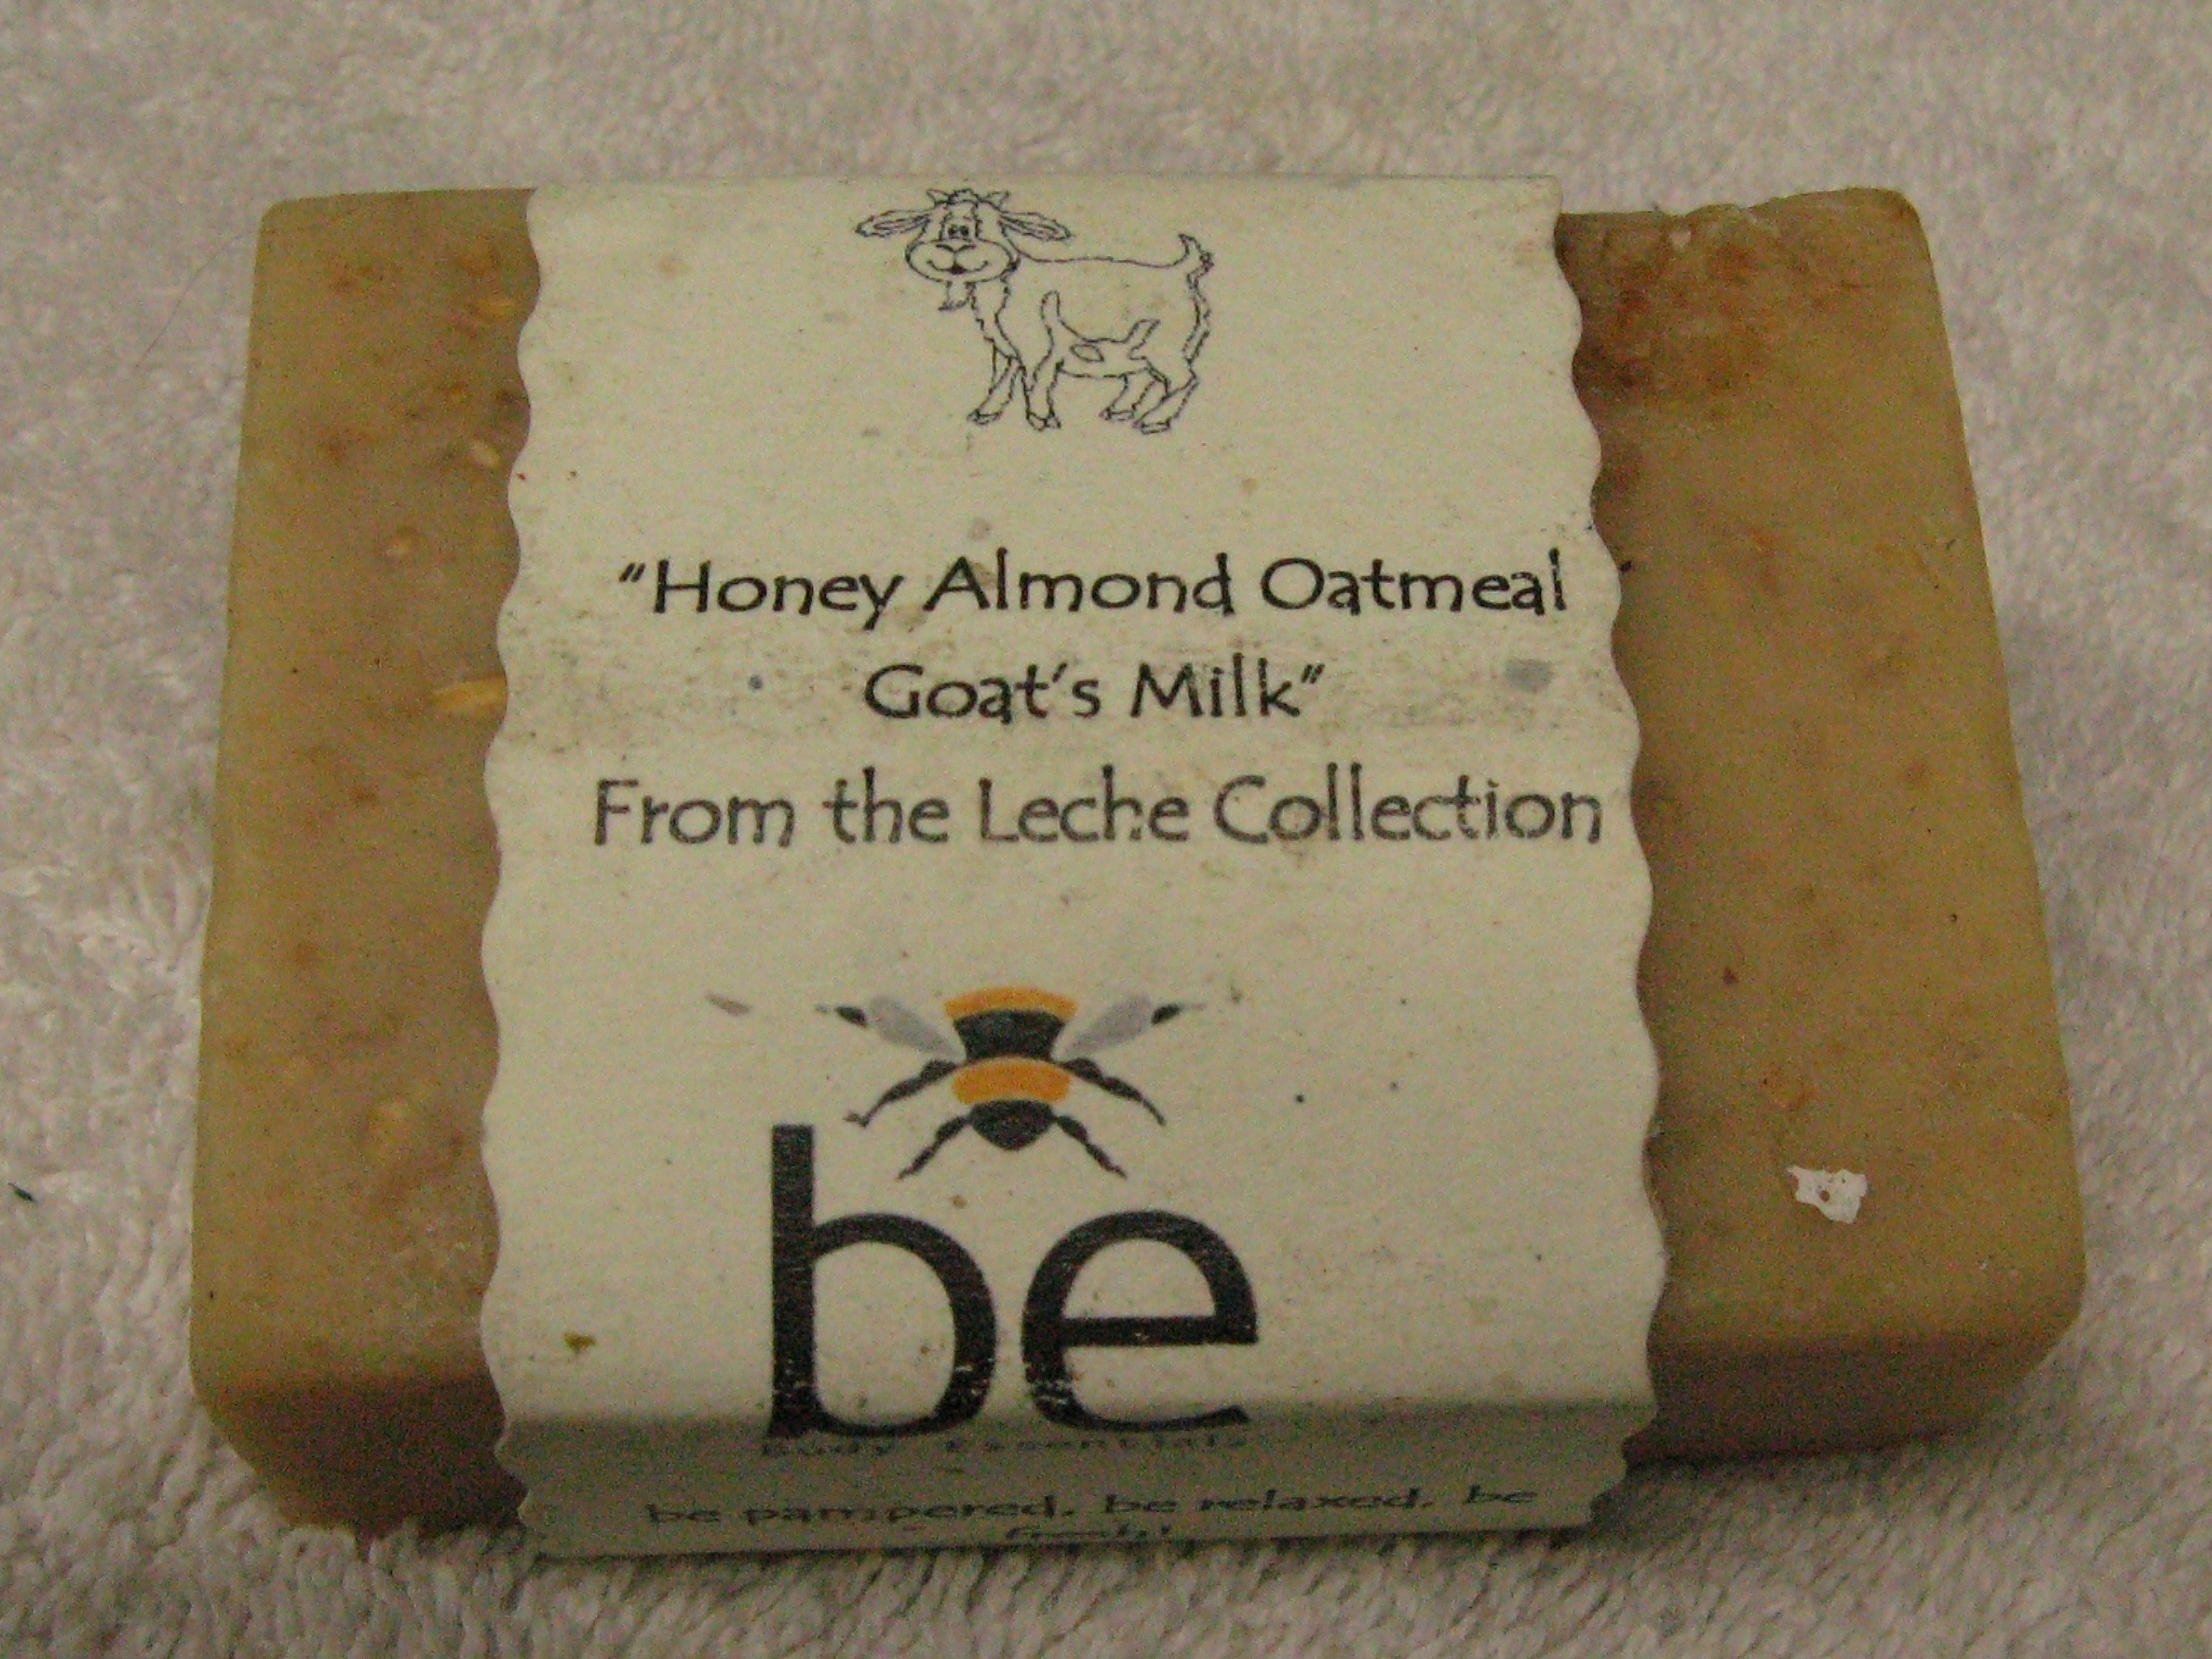 Honey, Almond, Oatmeal & Goats Milk Soap Bar hth009